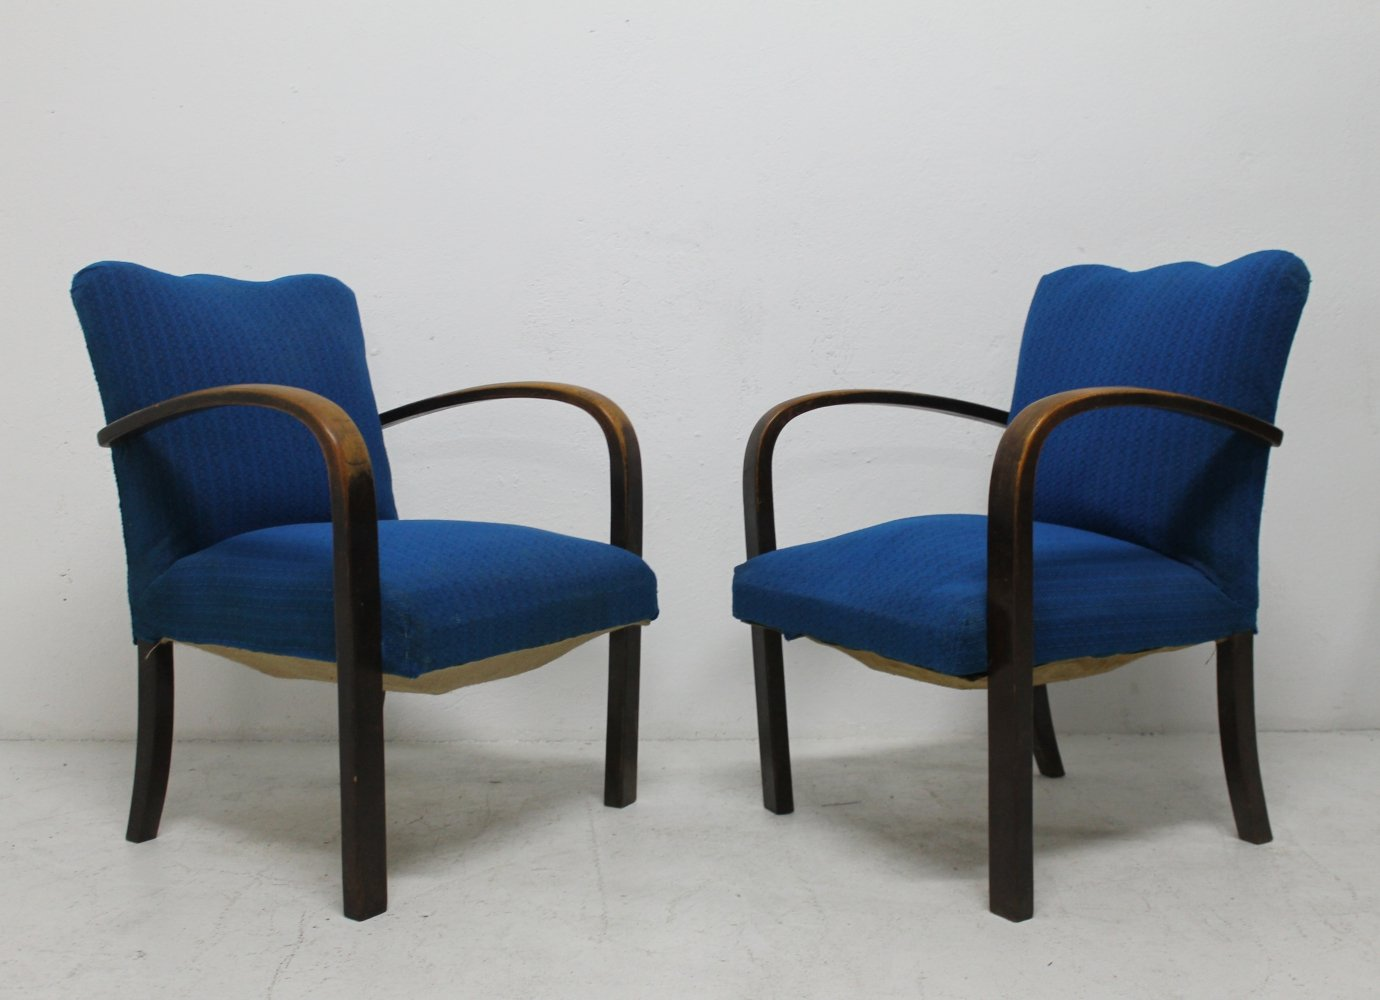 Pair of Thonet lounge chairs, 1950s